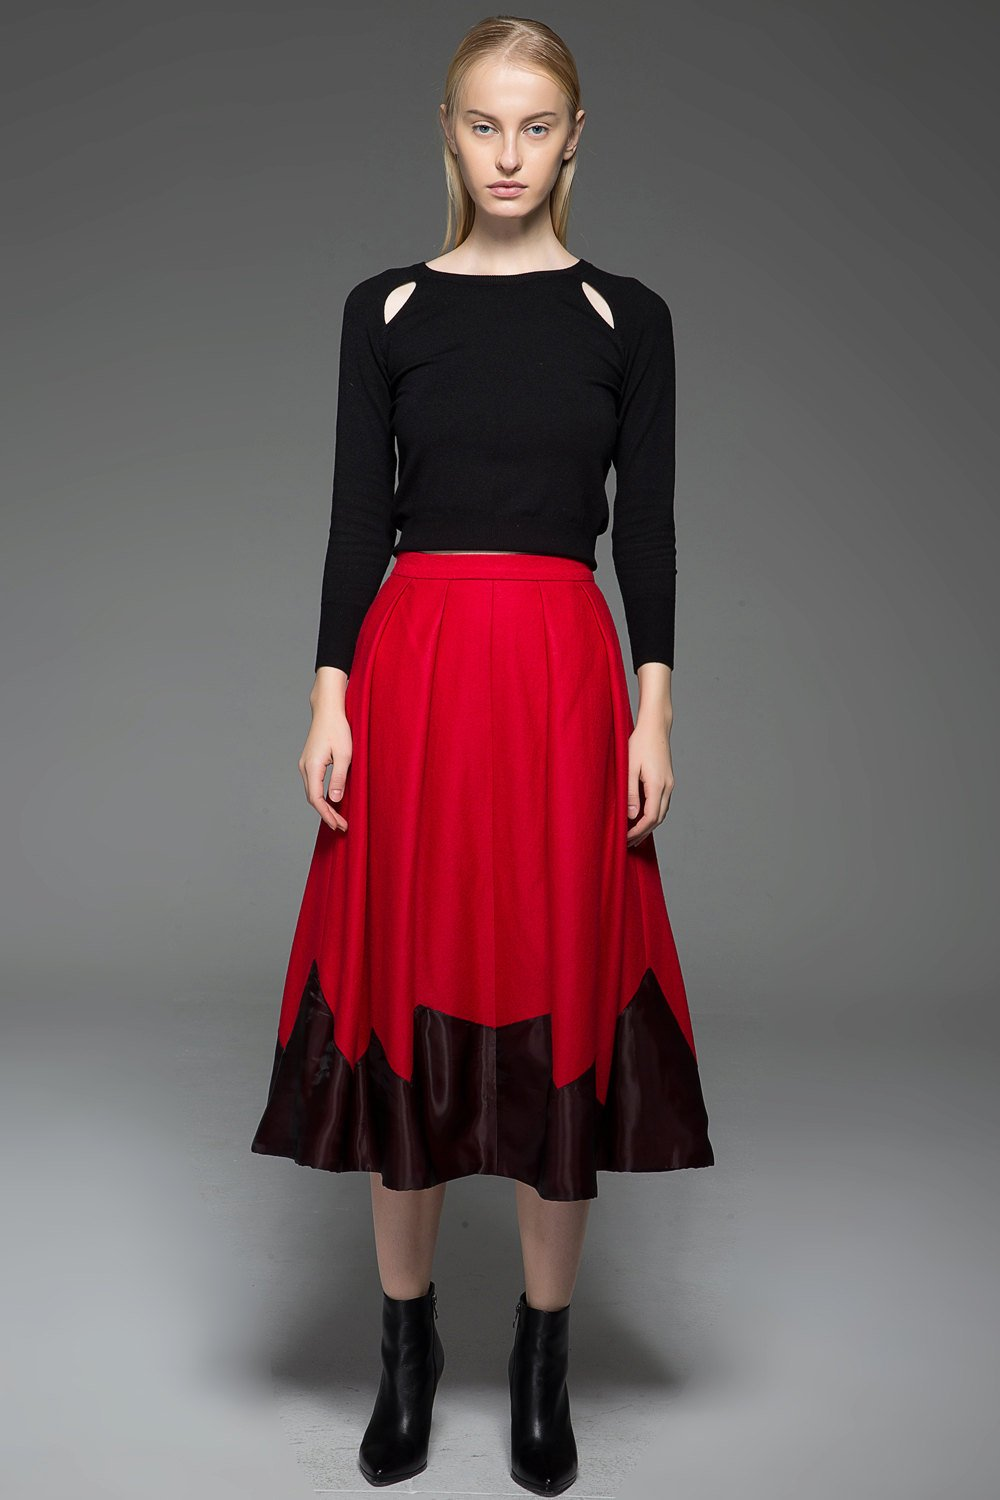 Red skirt, winter skirt, midi skirt, wool skirt, womens skirts, pleated skirt, autumn skirt, handmade skirt, unique skirt C762